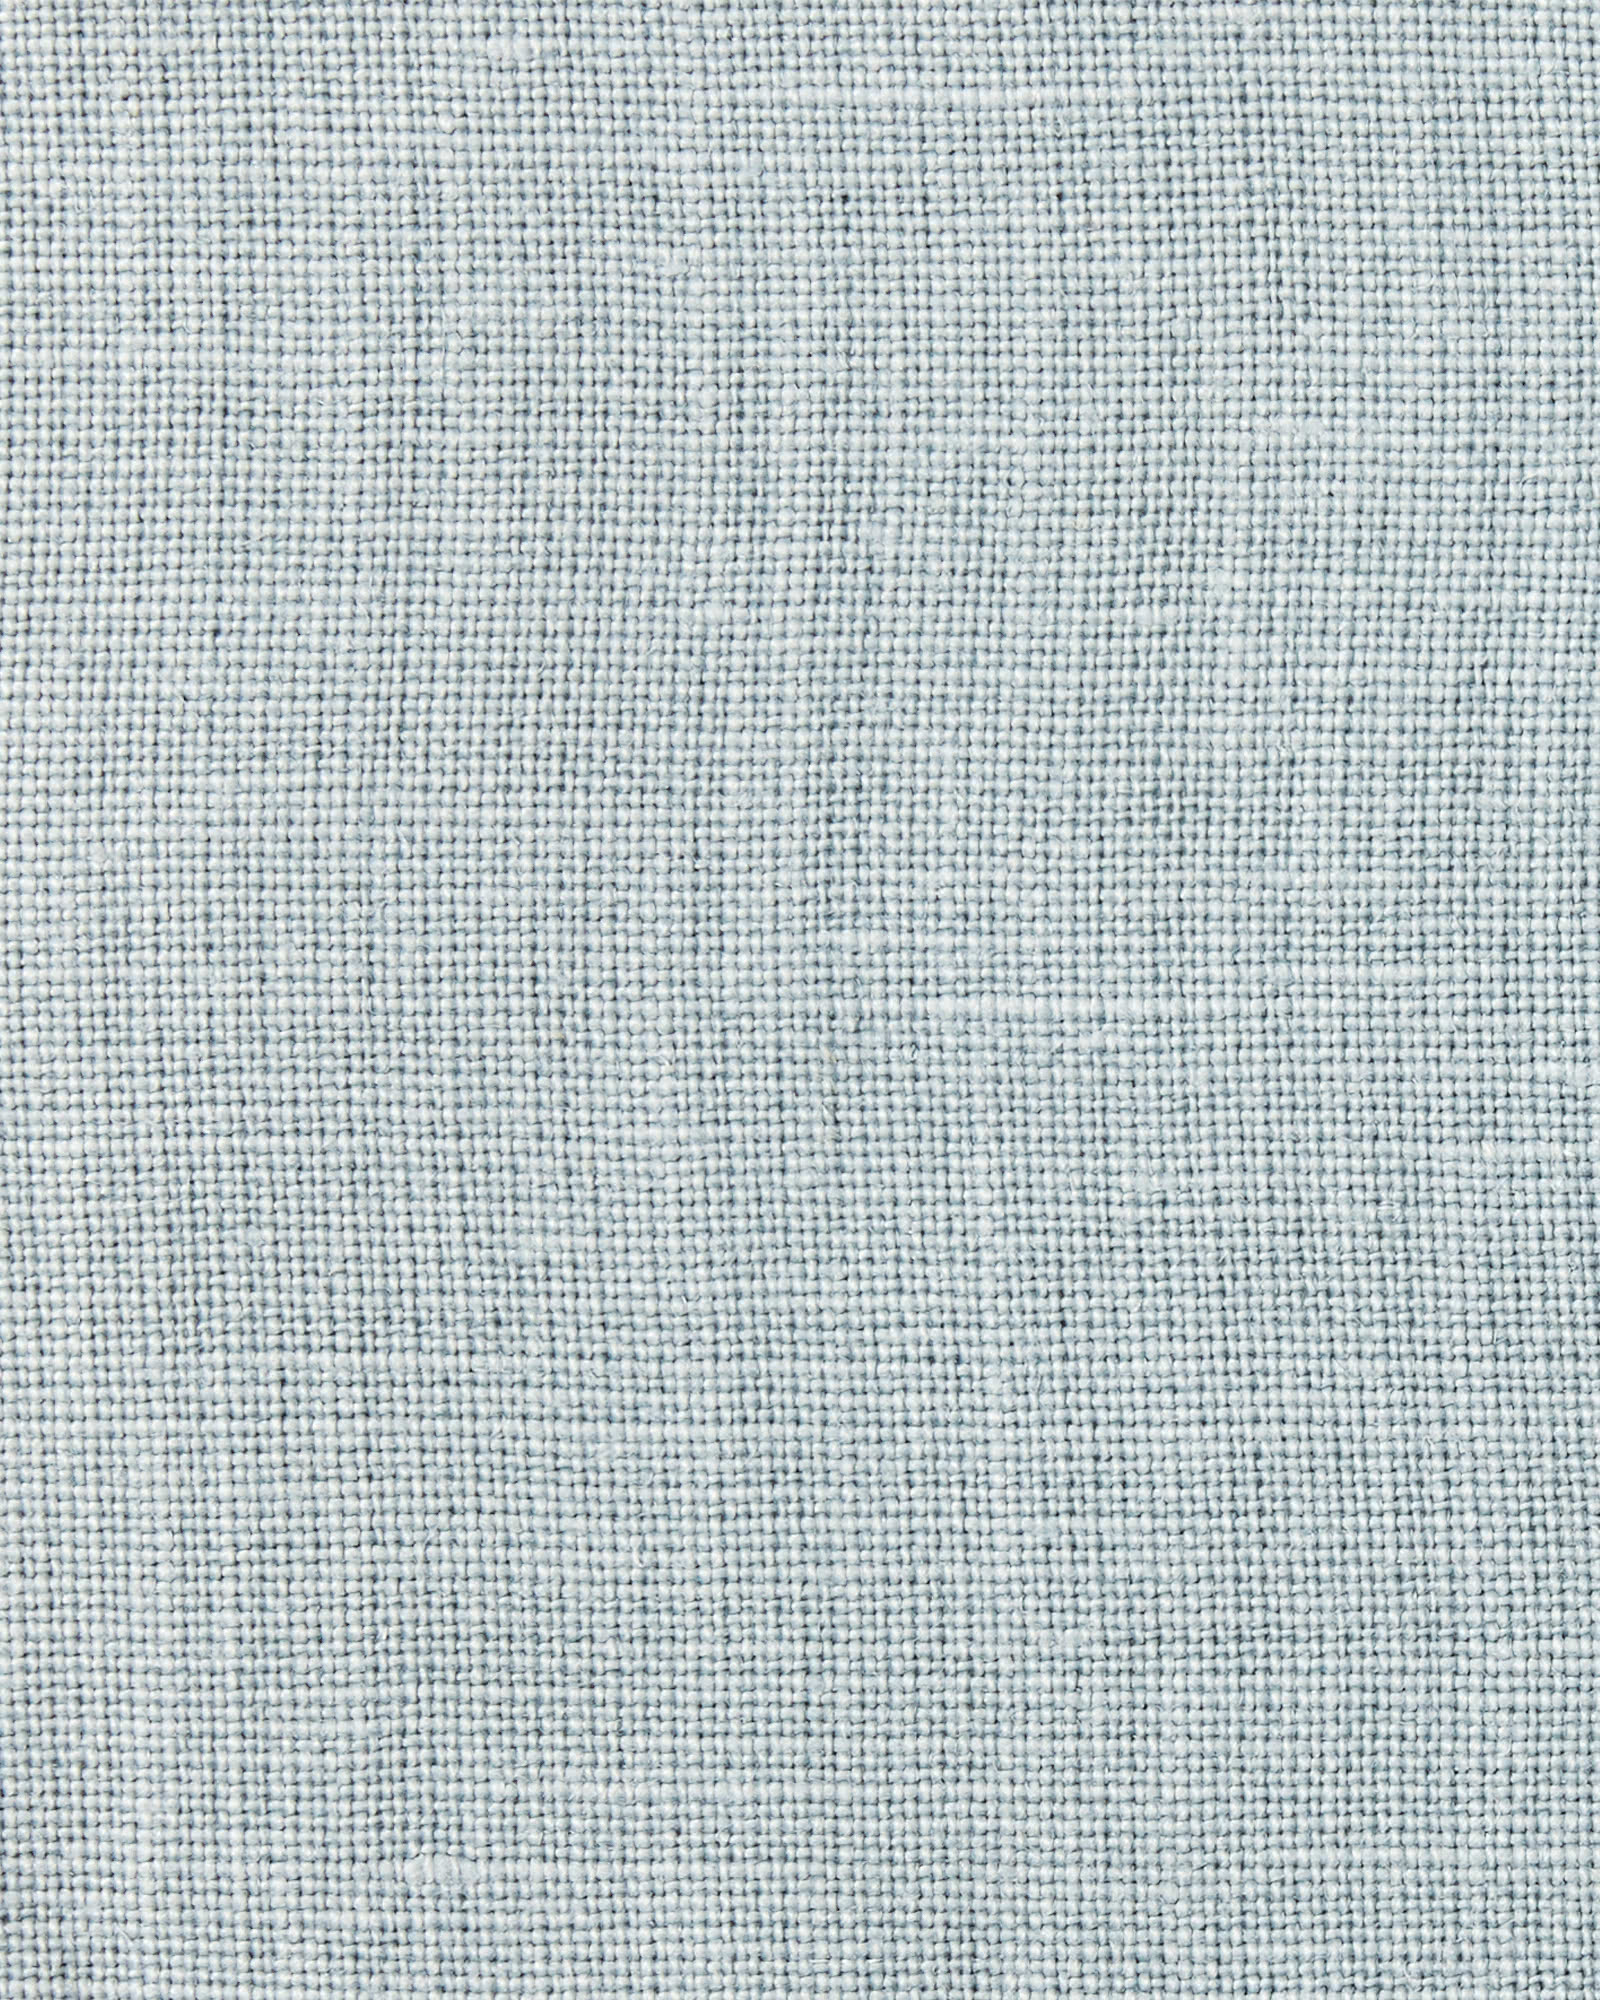 Fabric by the Yard – Washed Linen Fabric, Seaglass